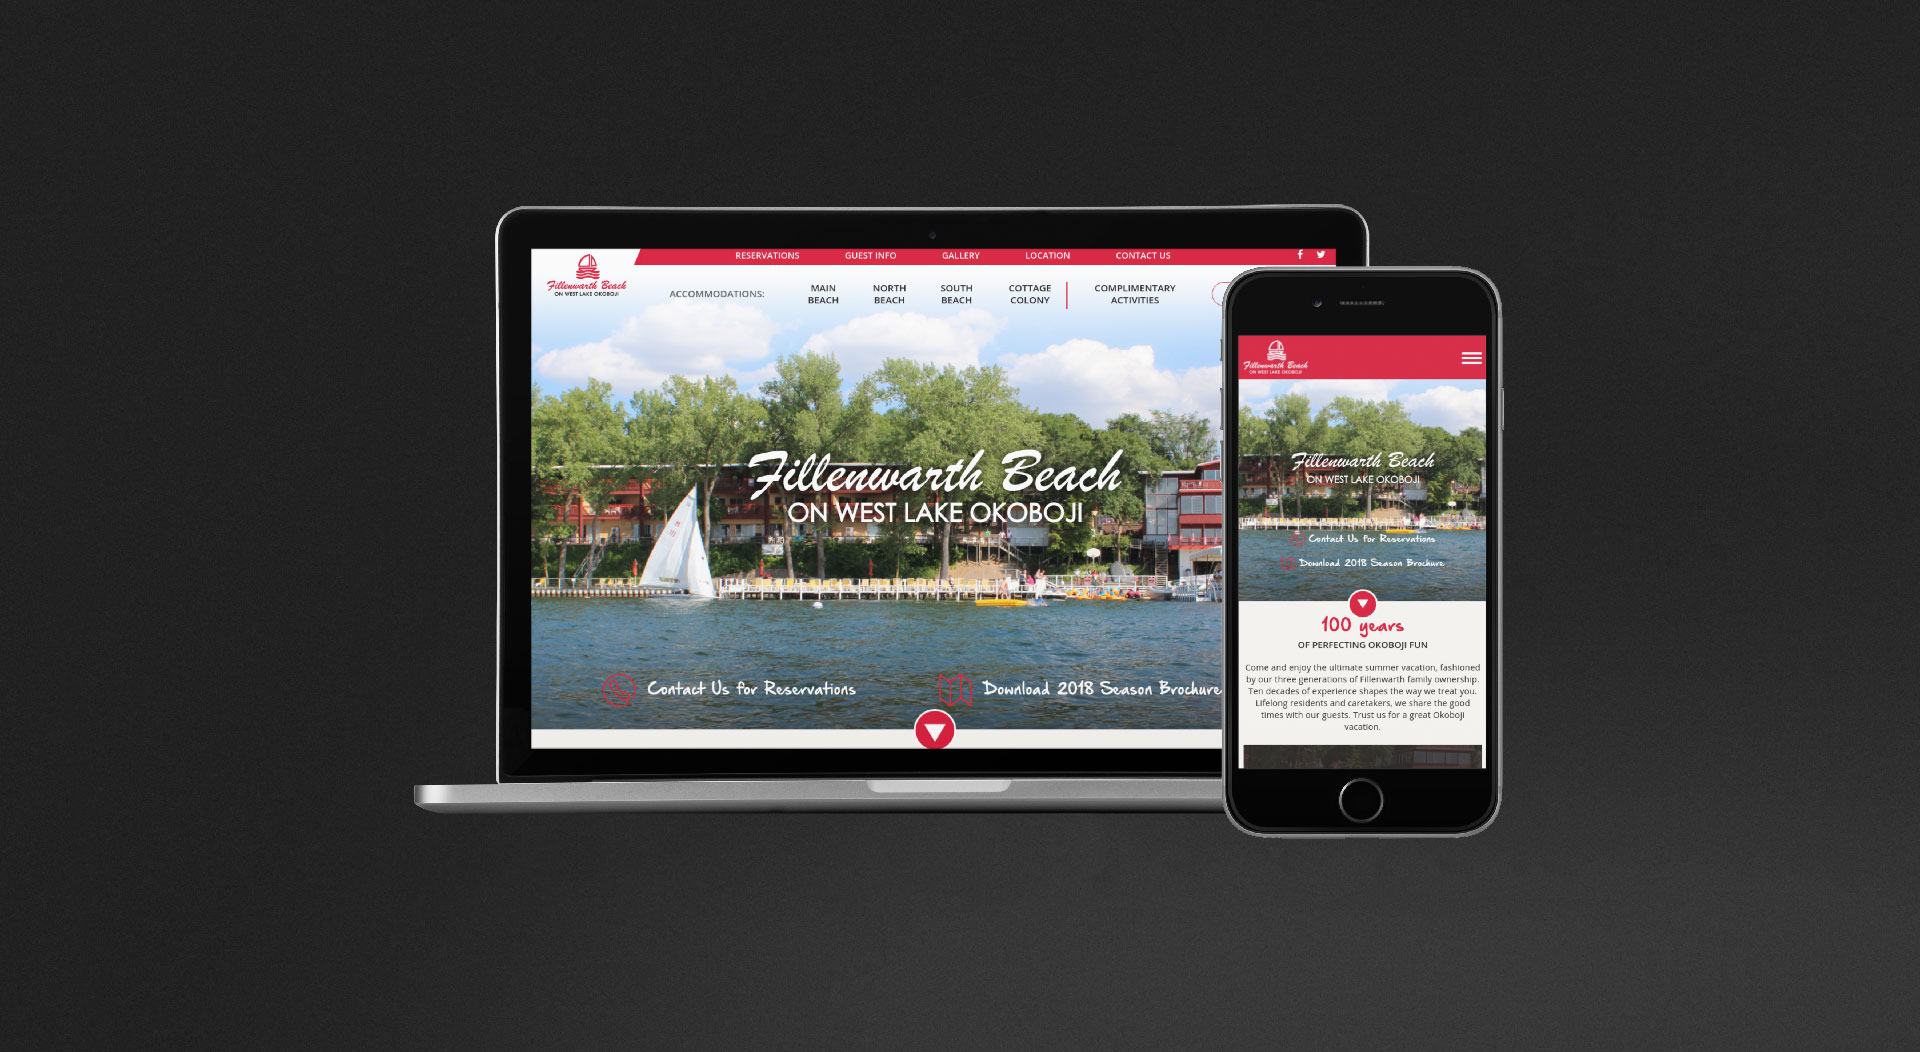 Fillenwarth Beach Responsive Web Design